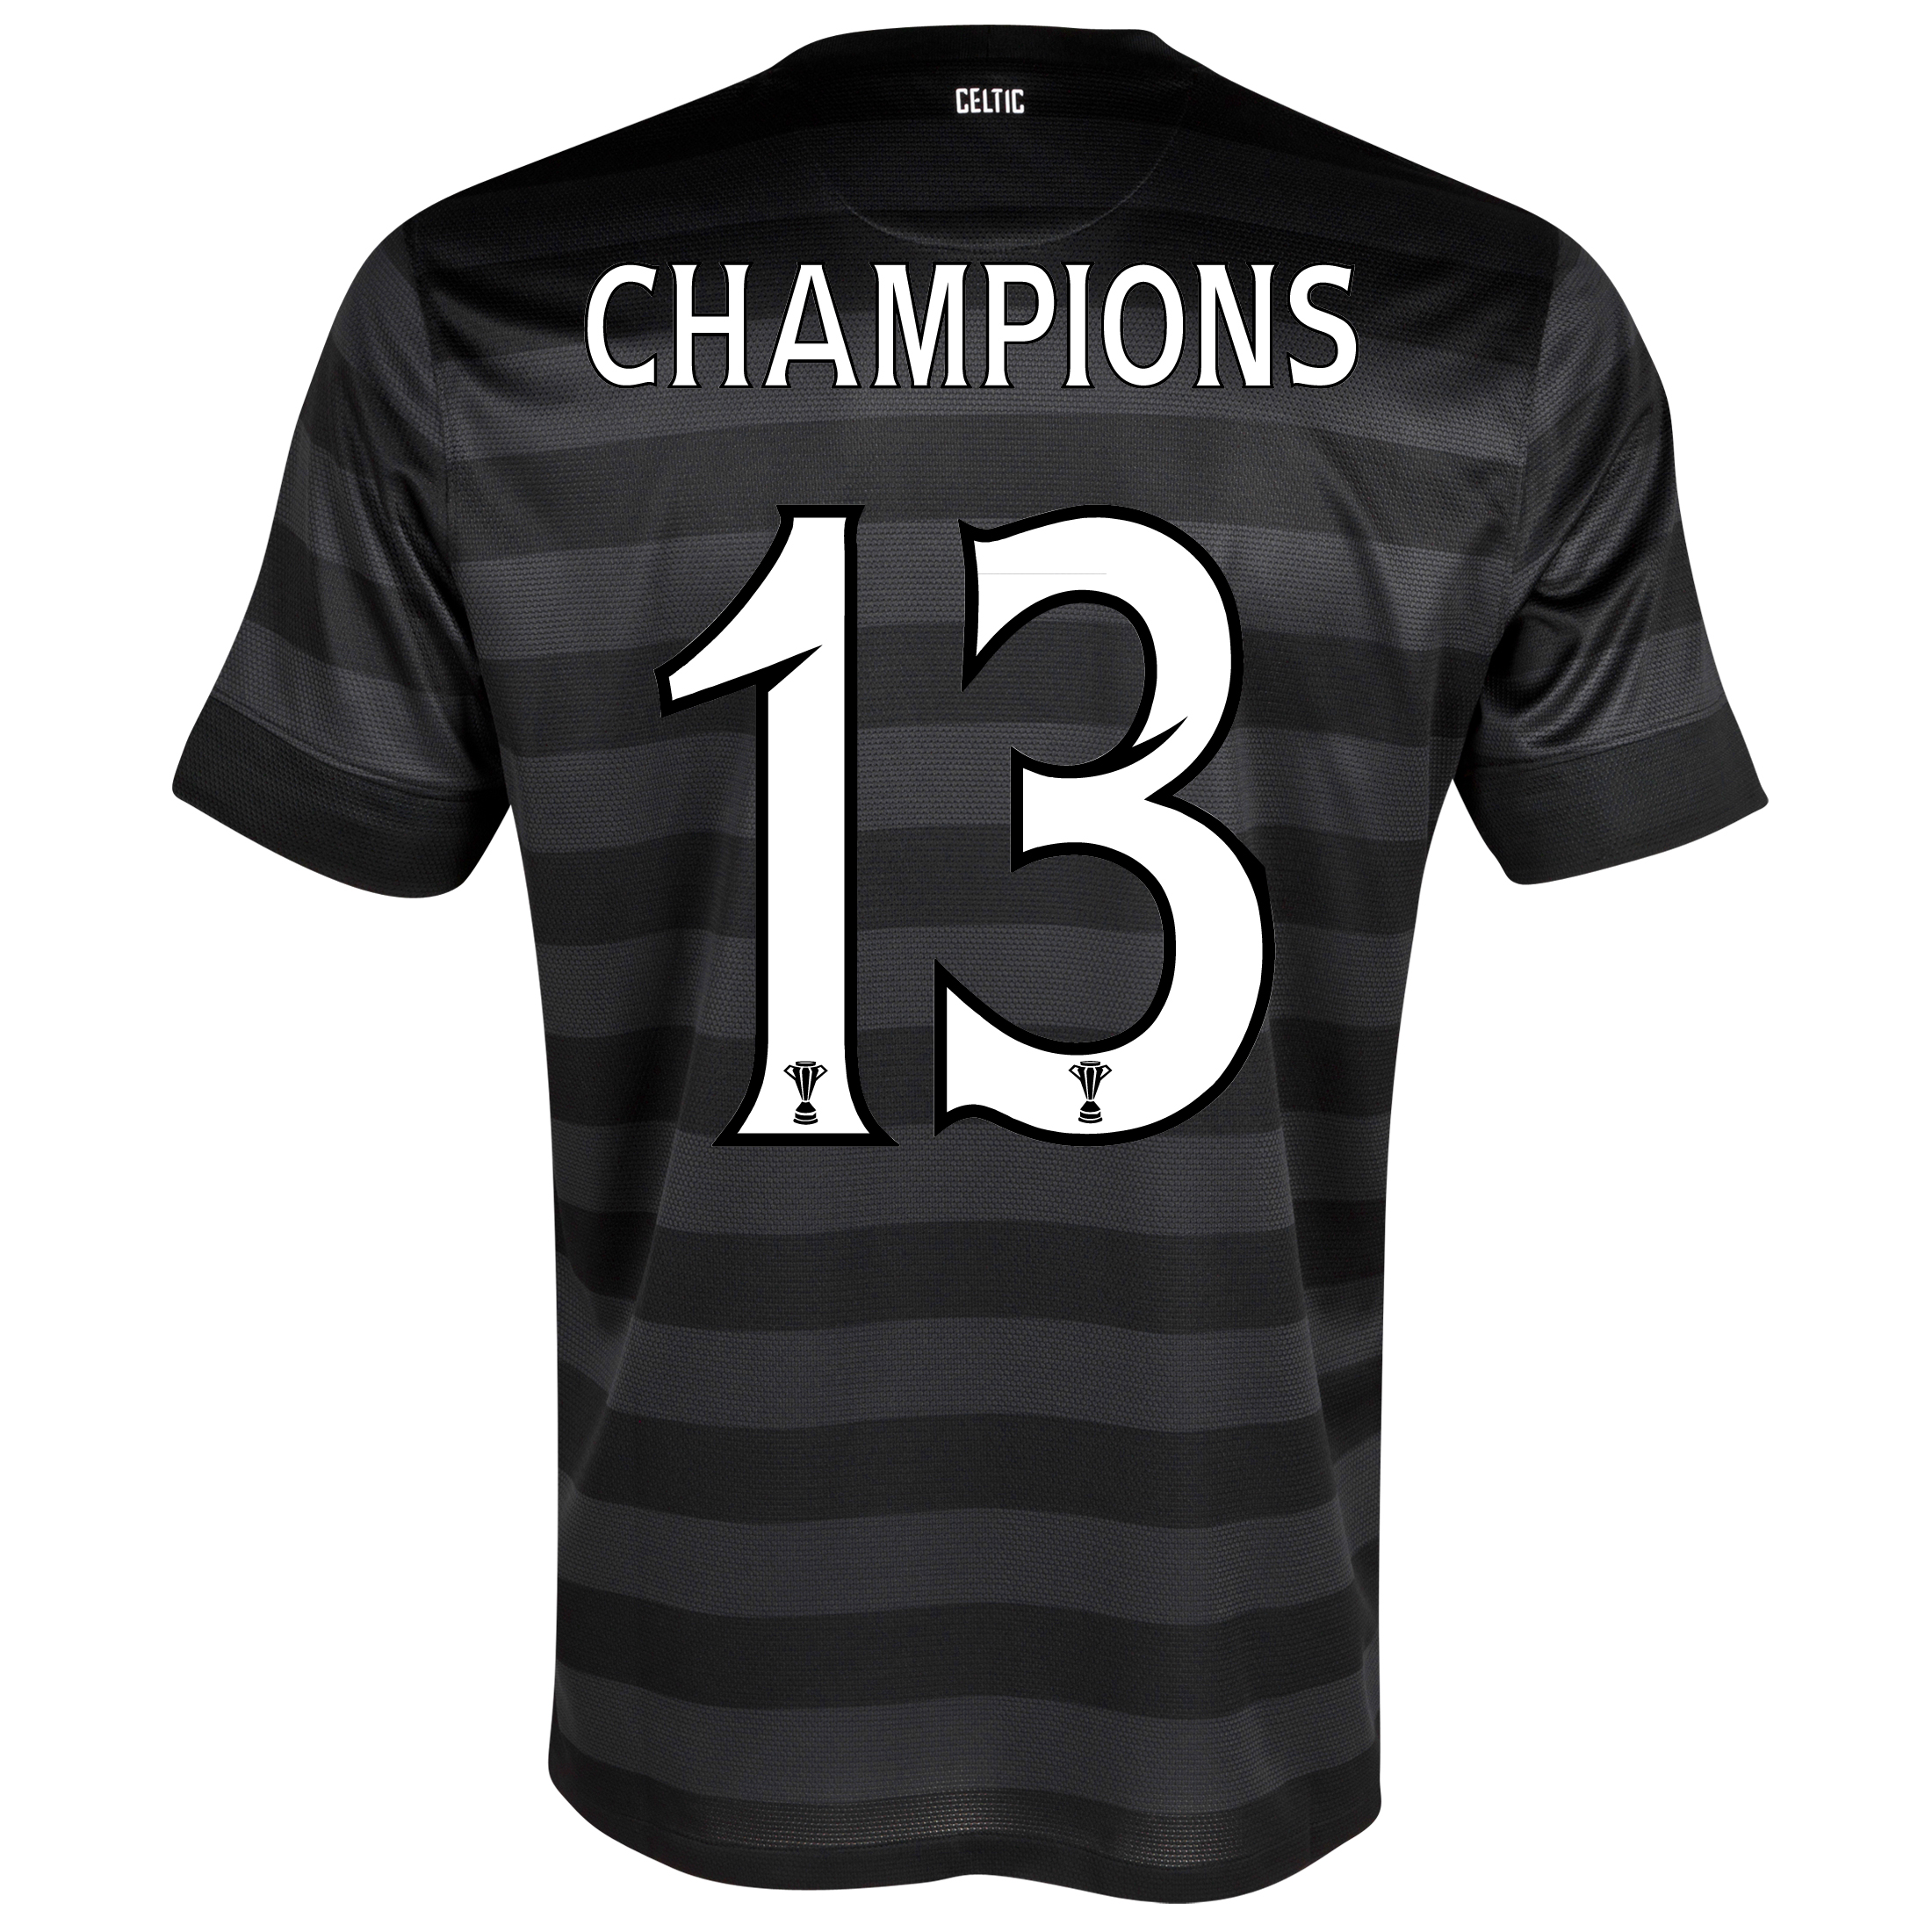 Celtic Away Shirt 2012/13 with Champions 13 printing